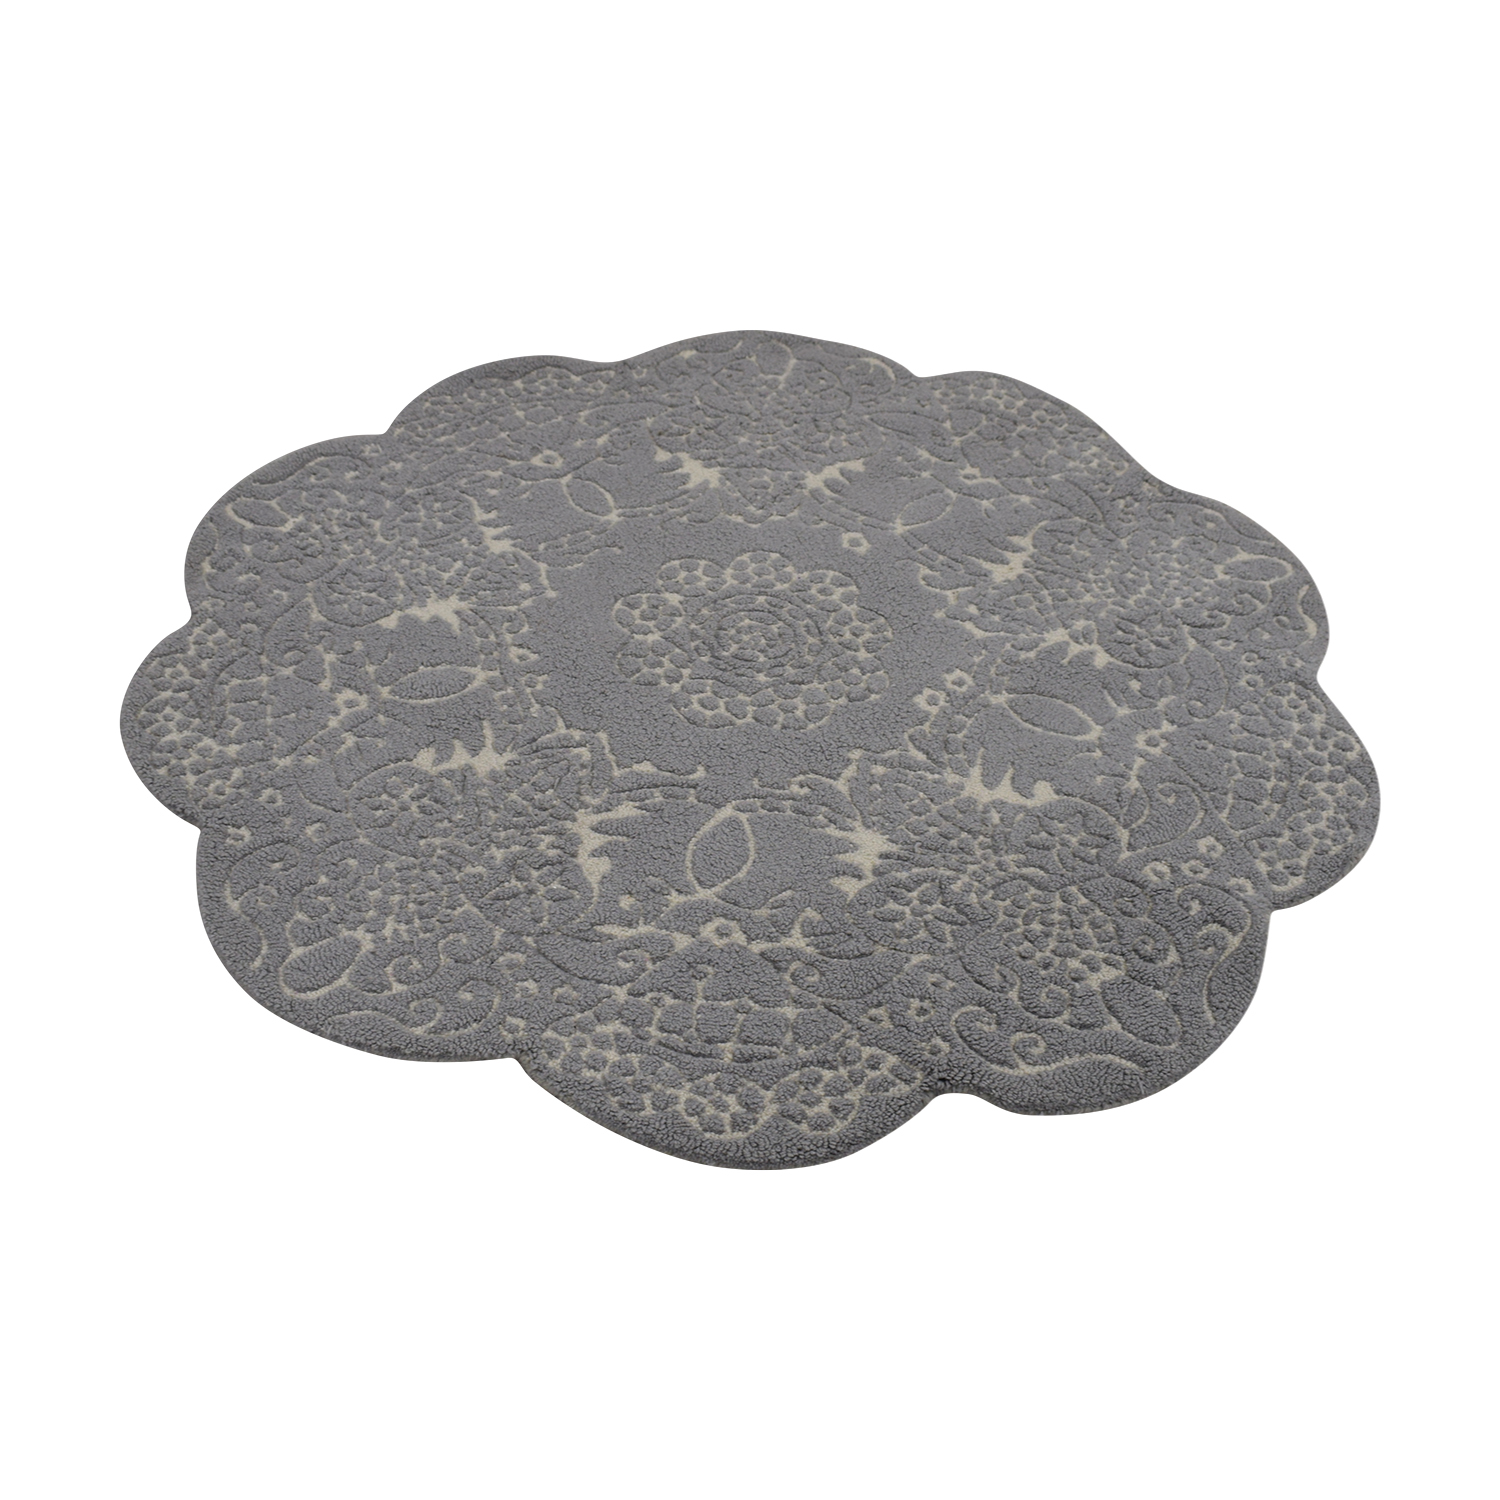 Anthropologie Doily Round Grey Rug Anthropologie